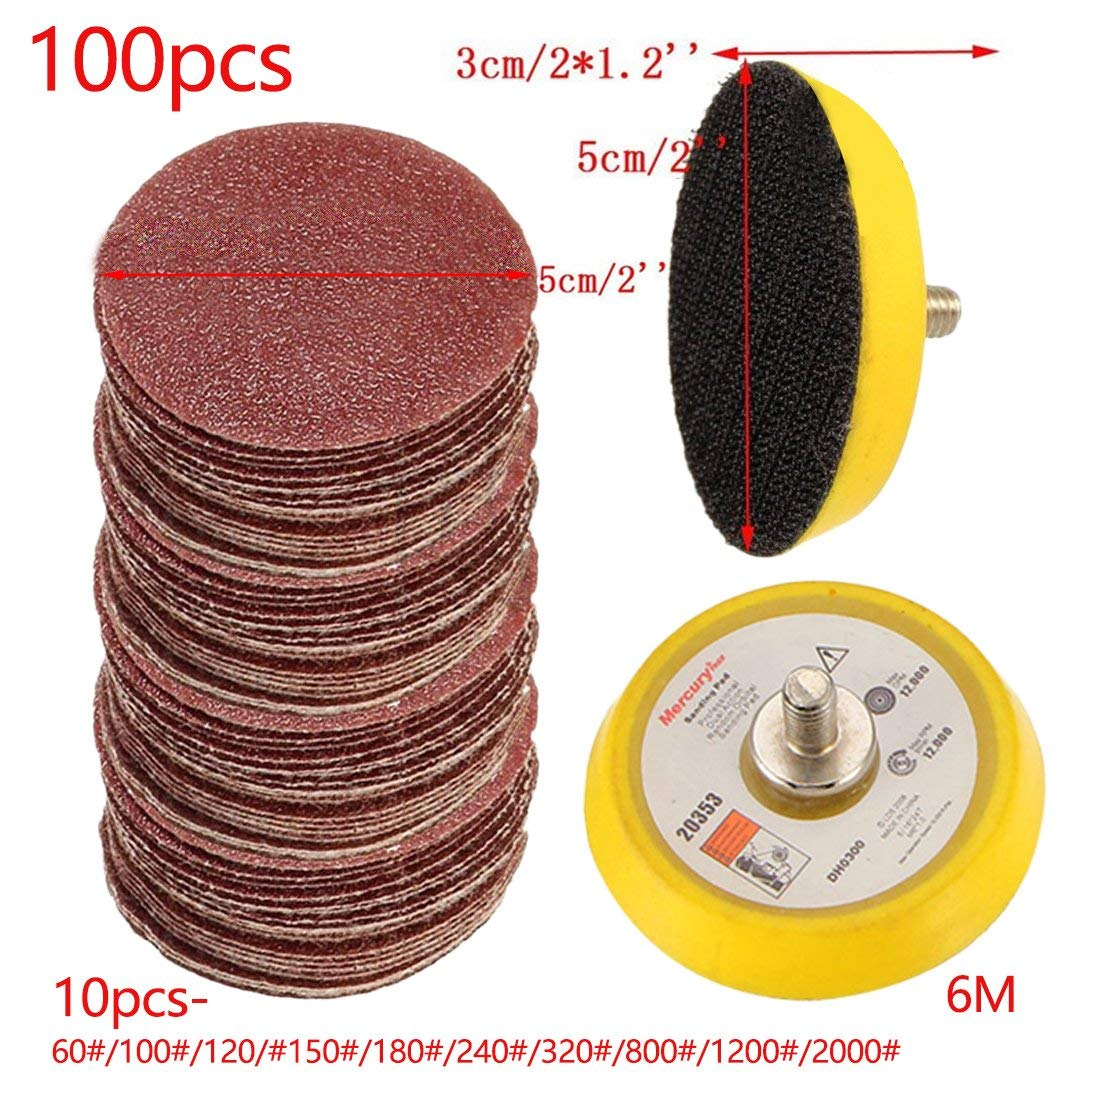 Topsame 100pcs/set Durable Sander Disc 50mm 60-2000 Grit Paper + 1pc Hook Loop Plate Fit Dremel 4000 Electric Grinder Abrasive Tools